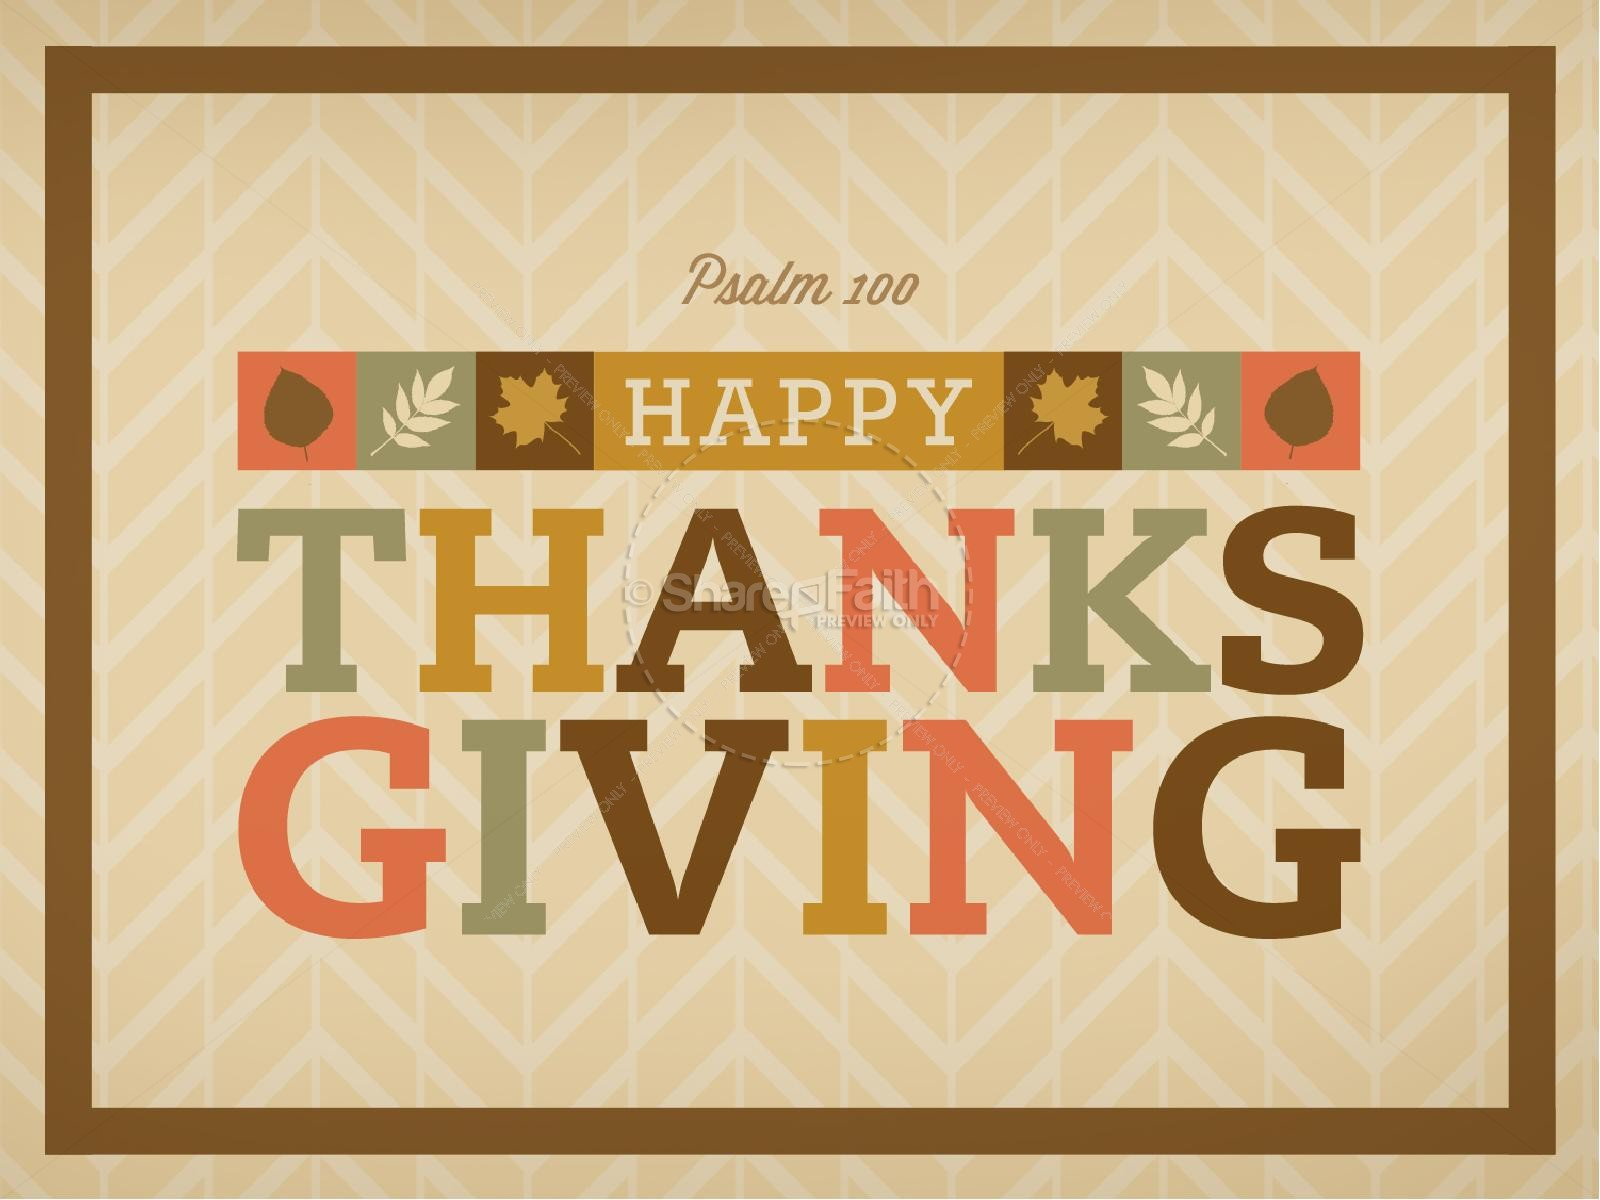 Top 21 thanksgiving powerpoint sermon templates sharefaith magazine weve also assembled over 700 thanksgiving templates flyers newsletters worship loops and more you can check them out here toneelgroepblik Gallery